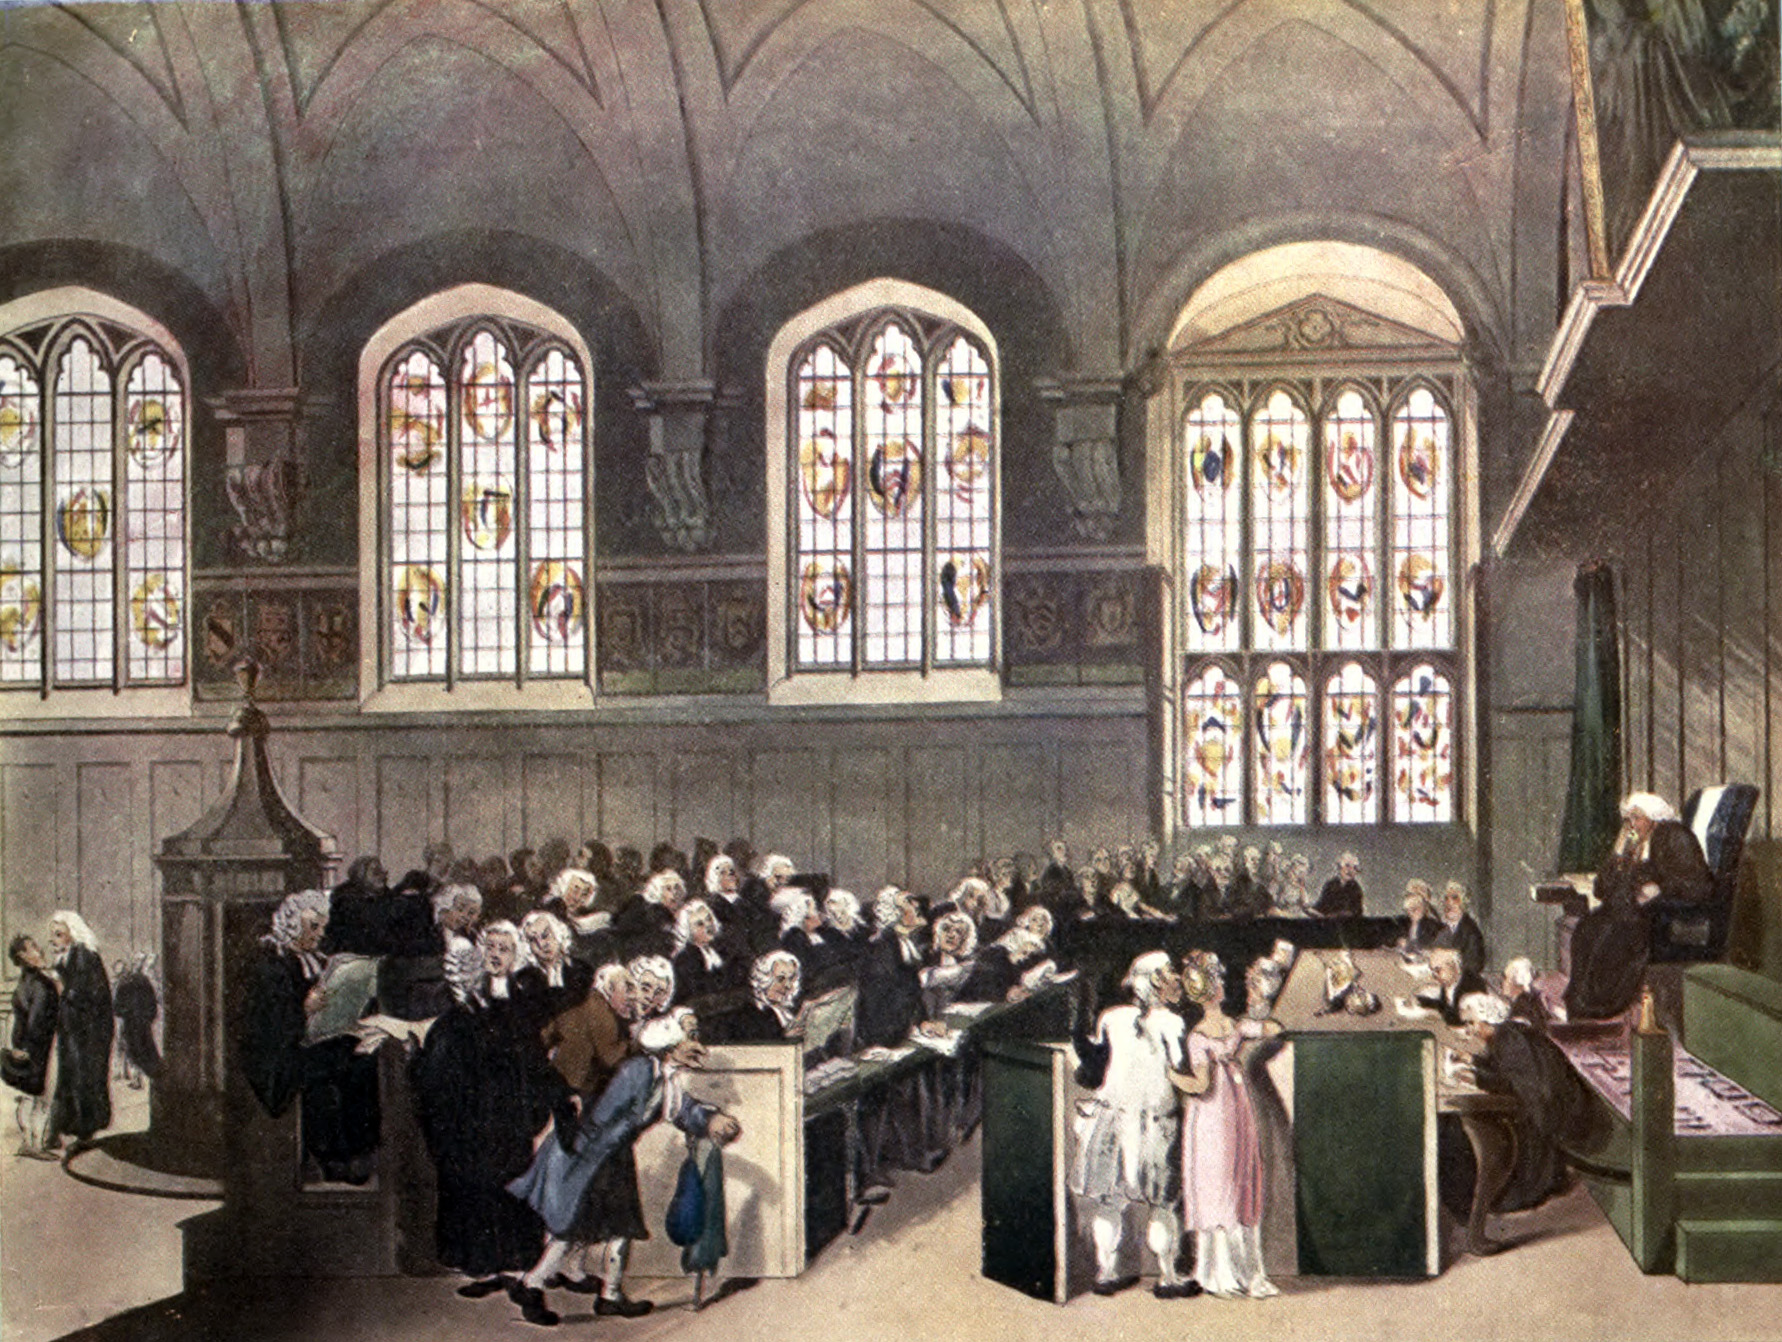 Microcosm_of_London_Plate_022_-_Court_of_Chancery,_Lincoln's_Inn_Hall_(tone)